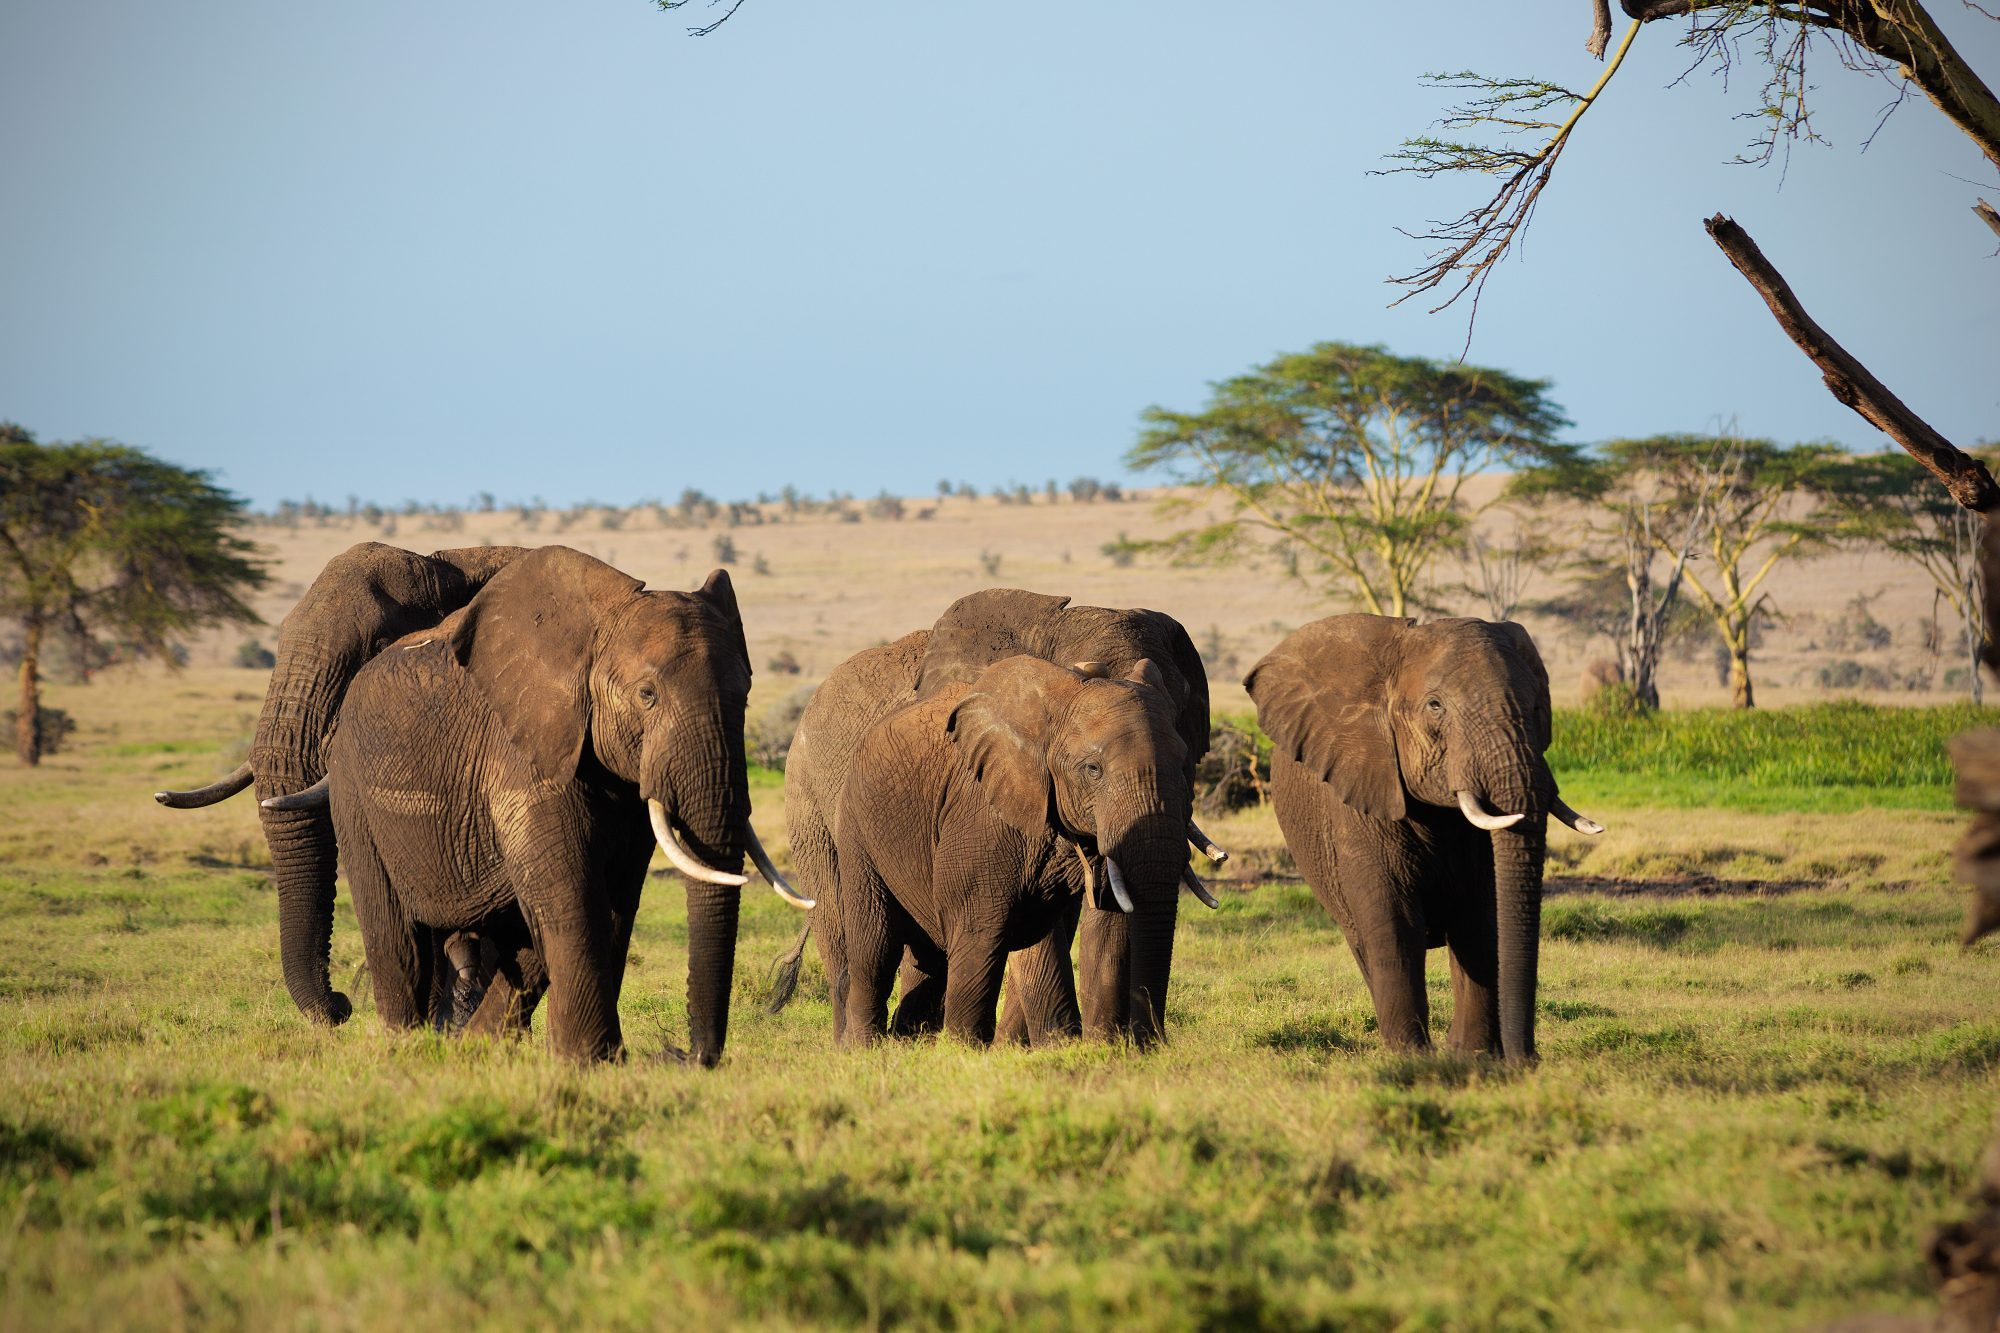 Elephants benefit from the protection brought by the project.